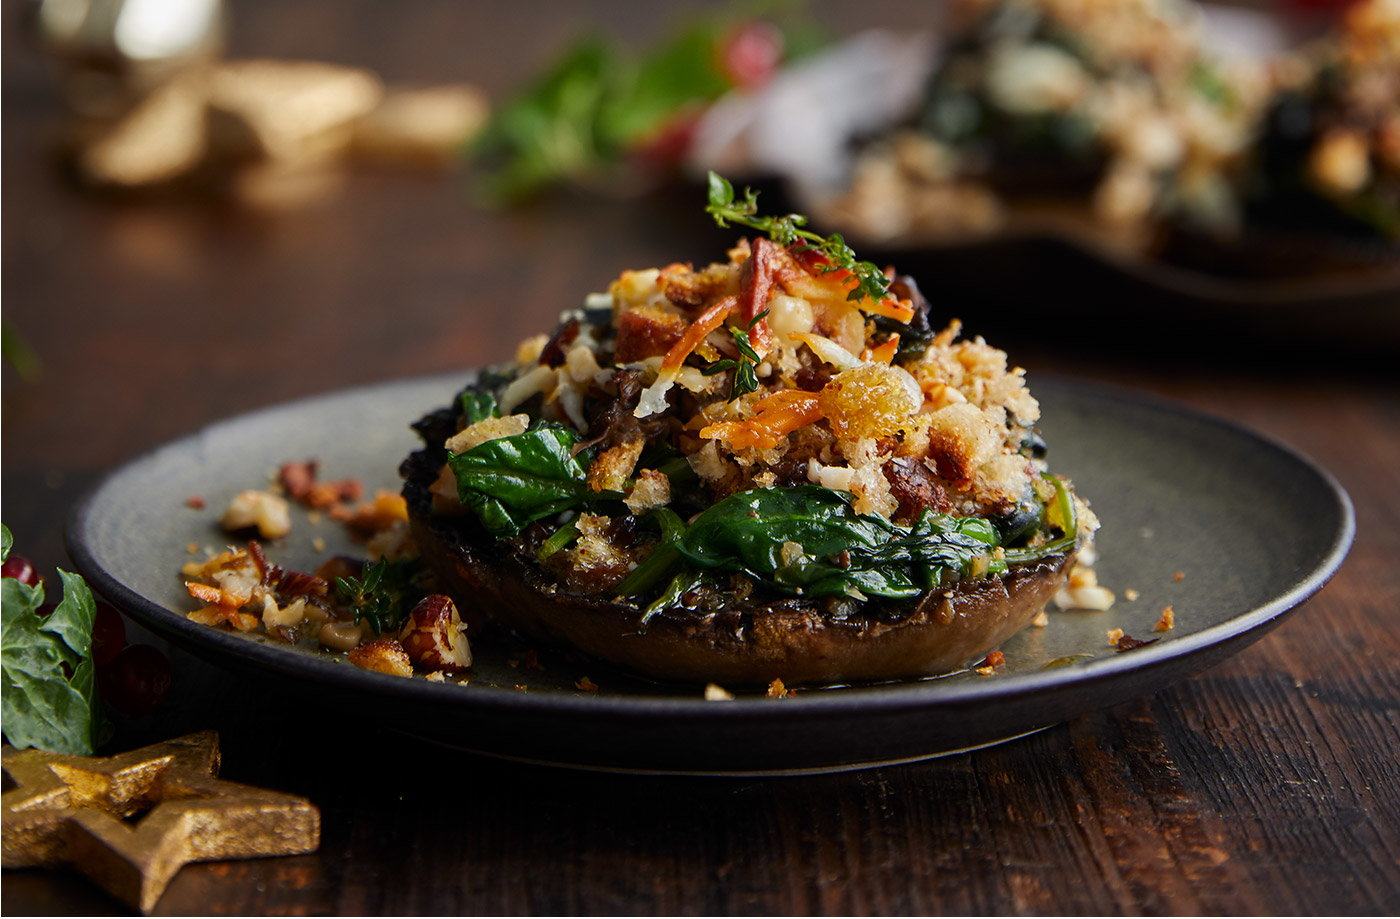 Giant stuffed mushrooms